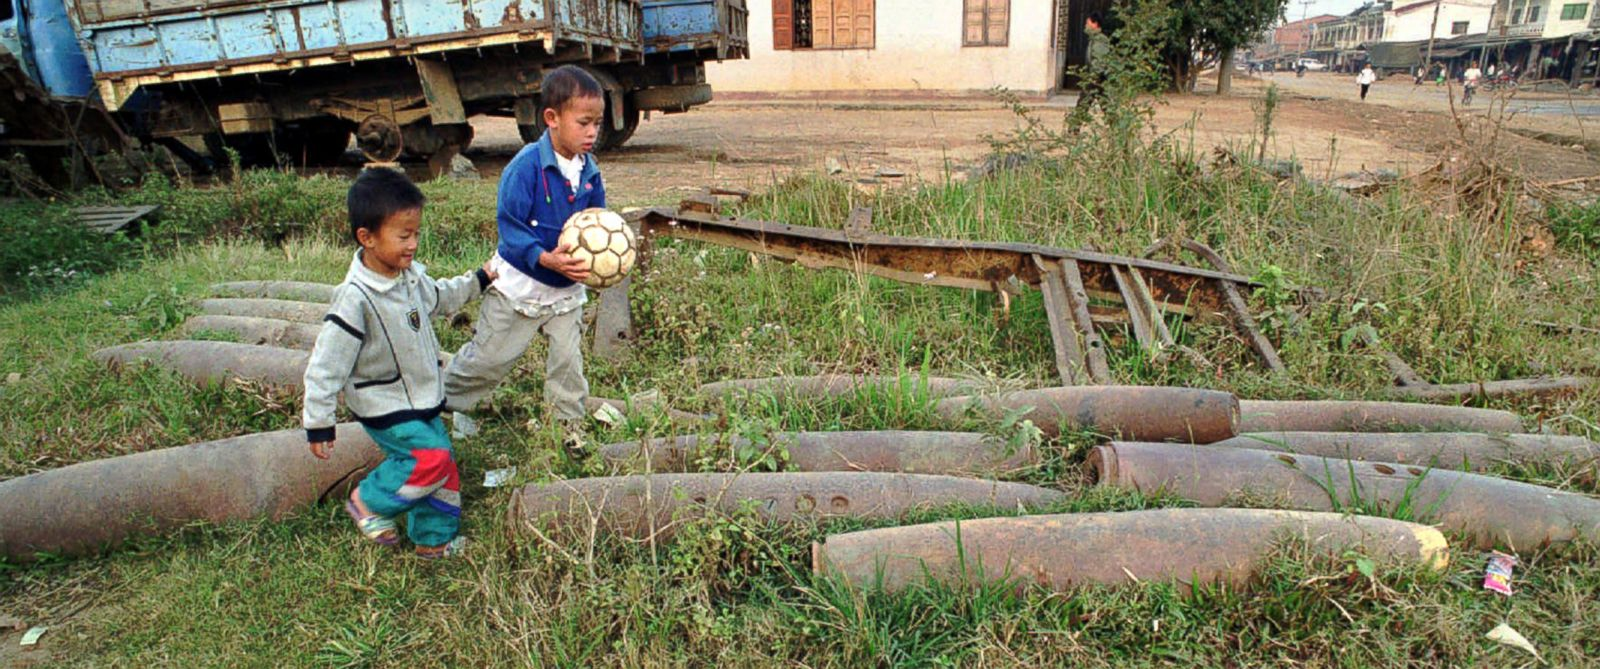 PHOTO: Two Laotian boys play with their ball in a front yard near collected bomb canisters in Xiangkhouang, Laos, in this Nov. 11, 1997 file photo.